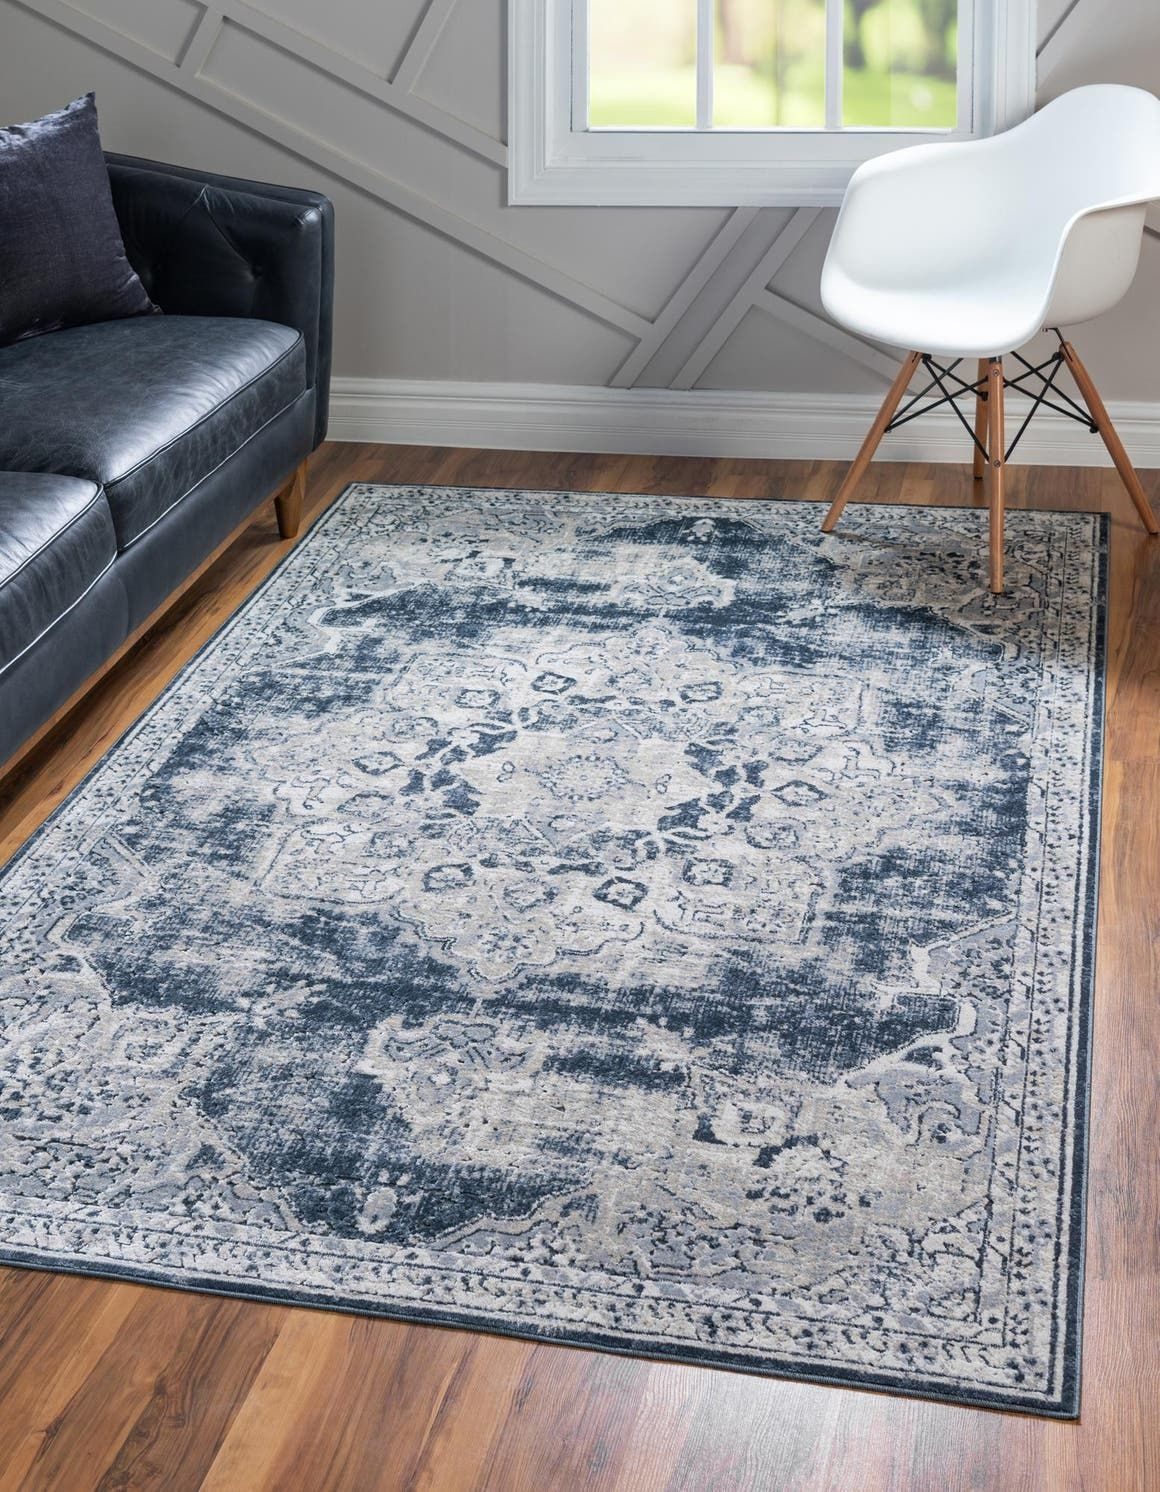 Exquisite Living Room Rugs 10x14 On Lovely Navy Blue Villa area Rug On Living Room Rugs 10x14